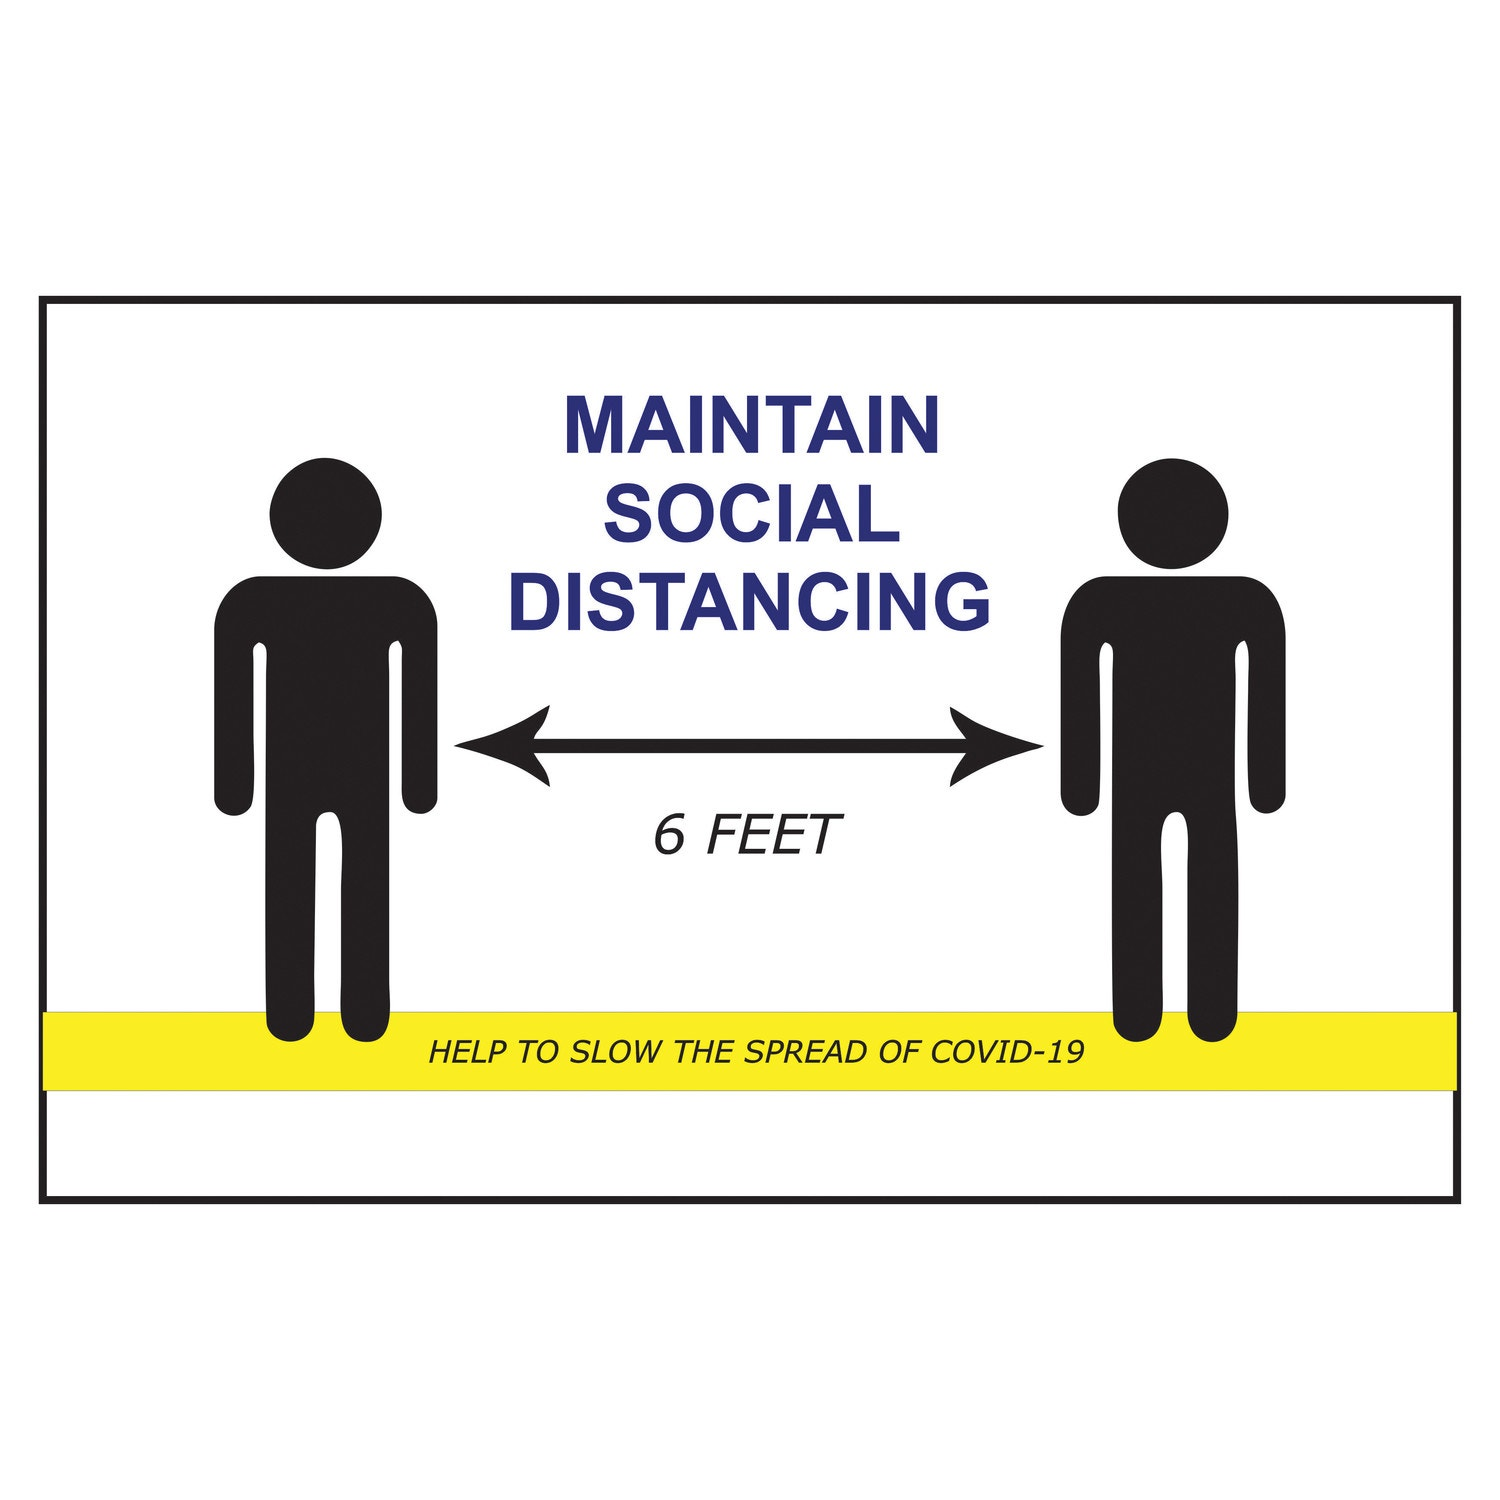 Maintain Social Distancing Sign Safety And Regulatory Signs Signage Office Supplies And Equipment Open Catalog American Hotel Site